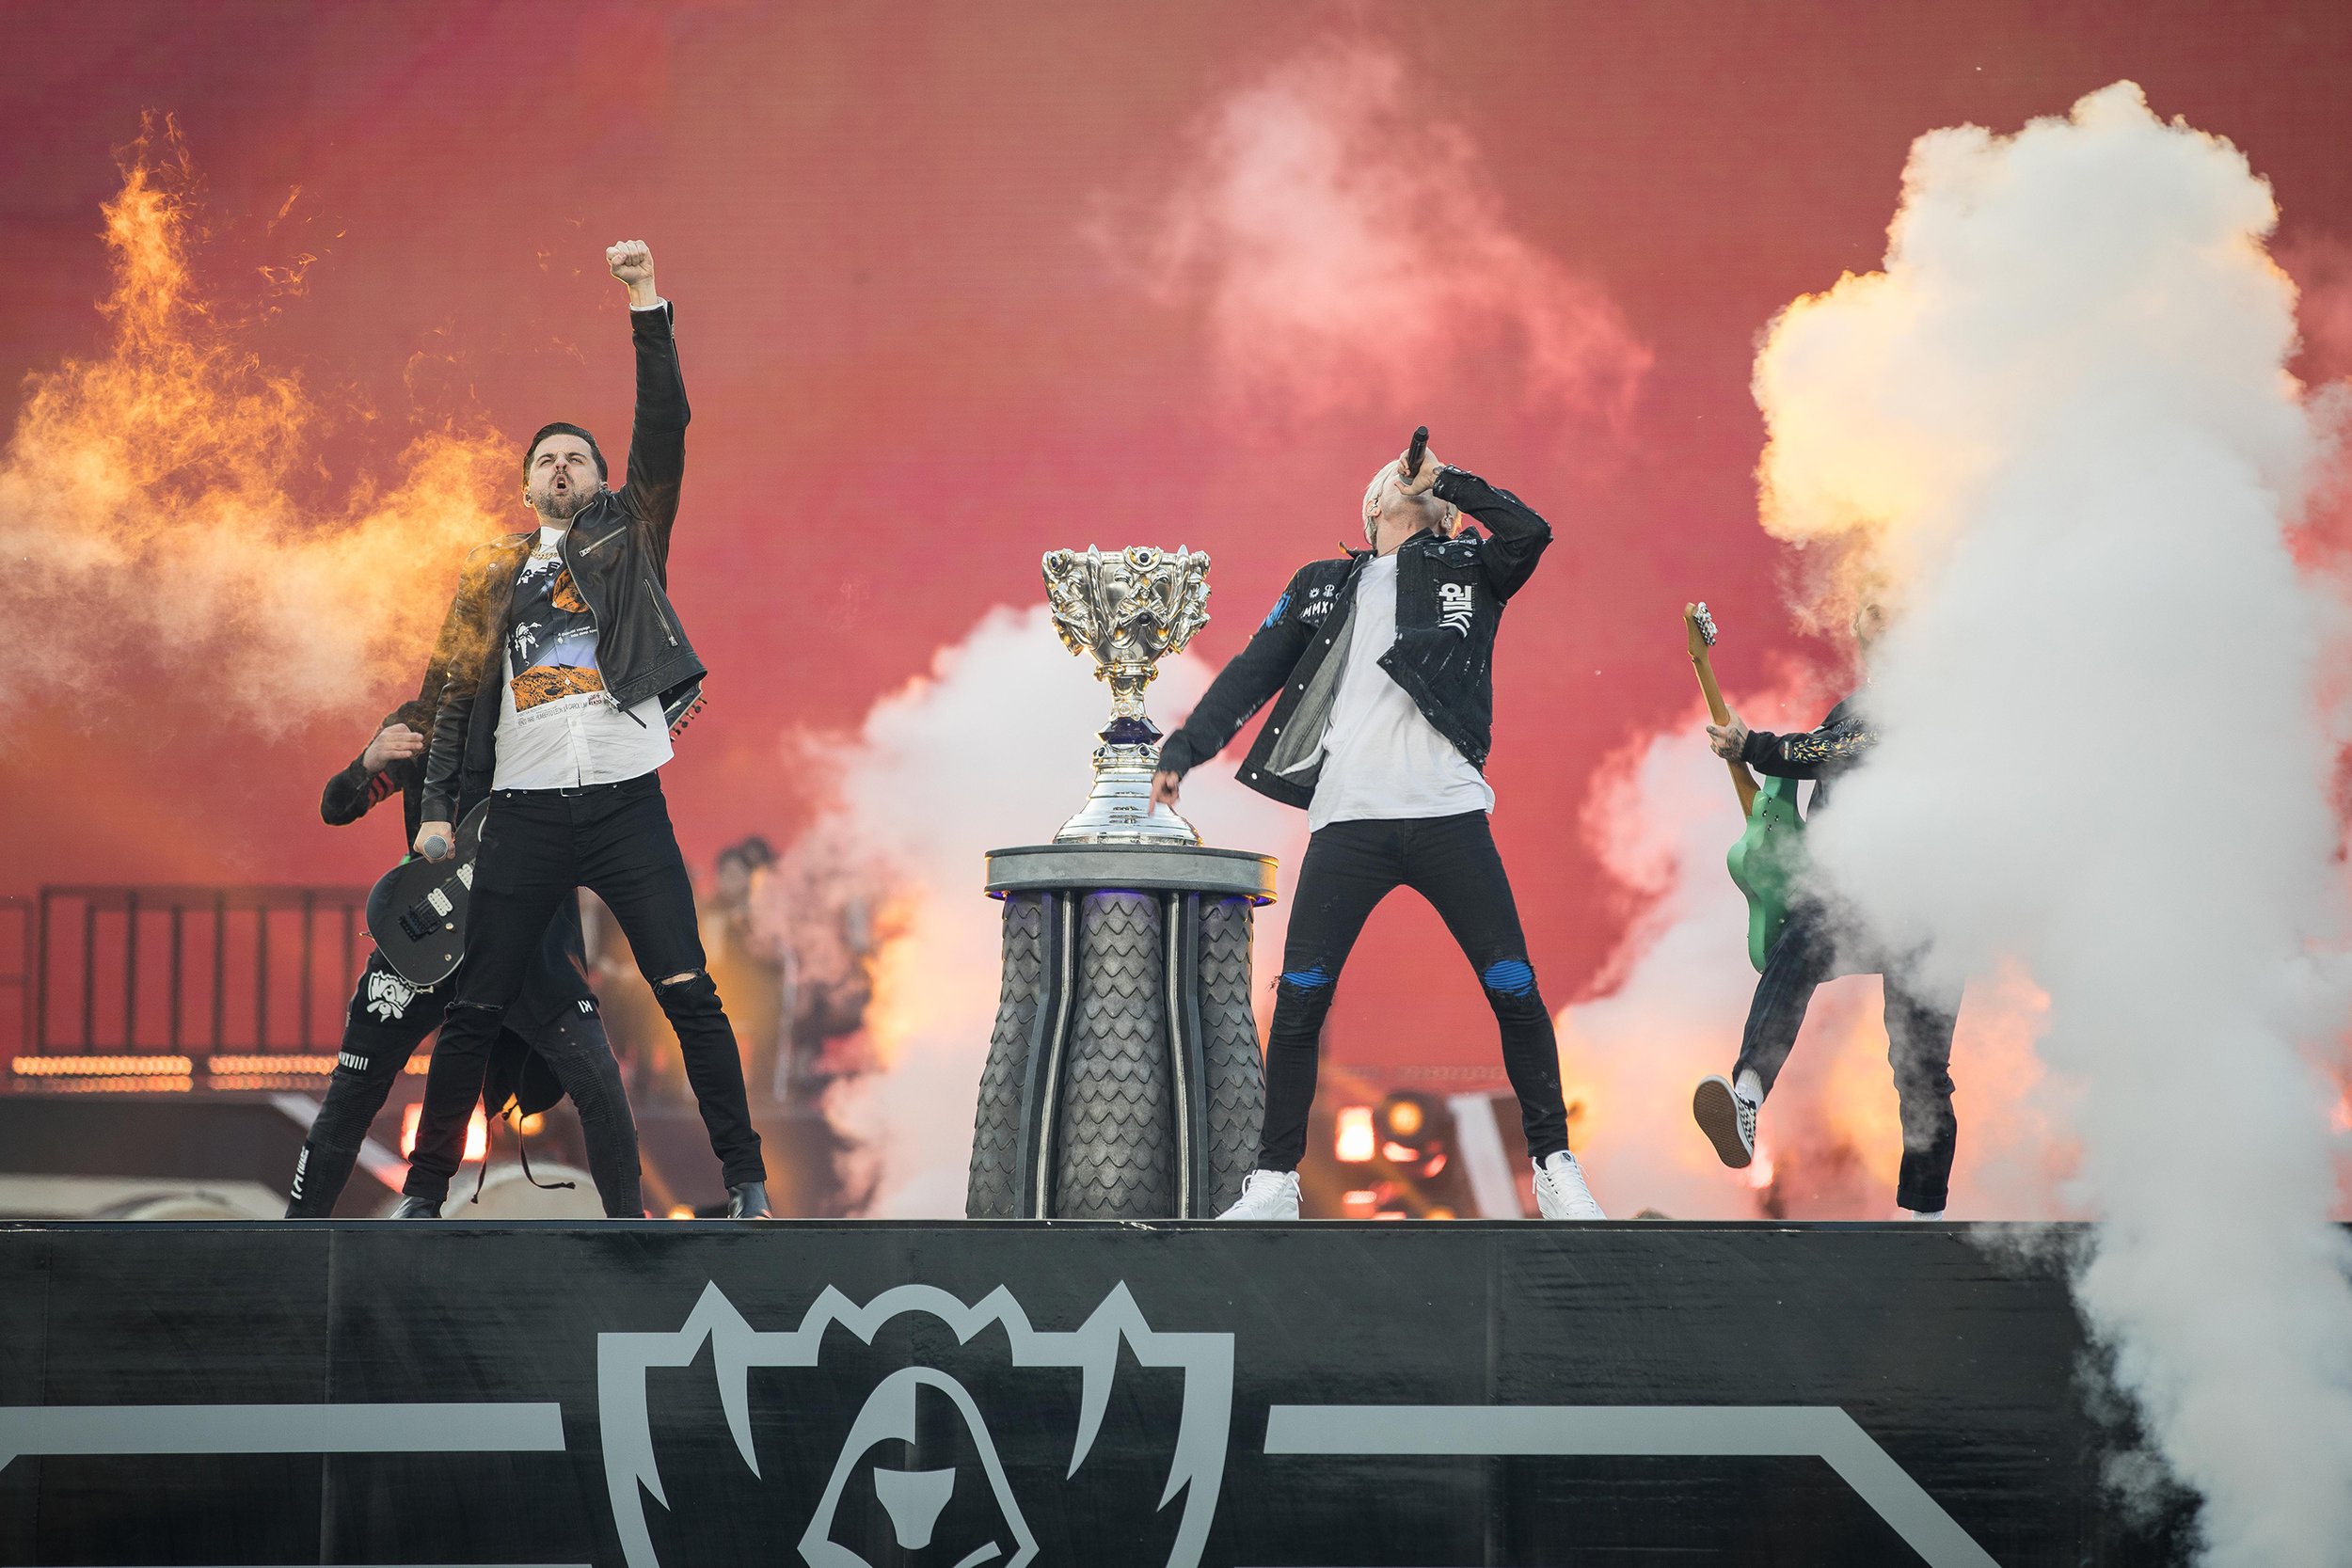 Stage music performance while showcasing trophy at the 2018 League of Legends World Championship sponsored by Mastercard on November 3, 2018 in Incheon, South Korea.  Photo by Hannah Smith/ESPAT Media for Mastercard